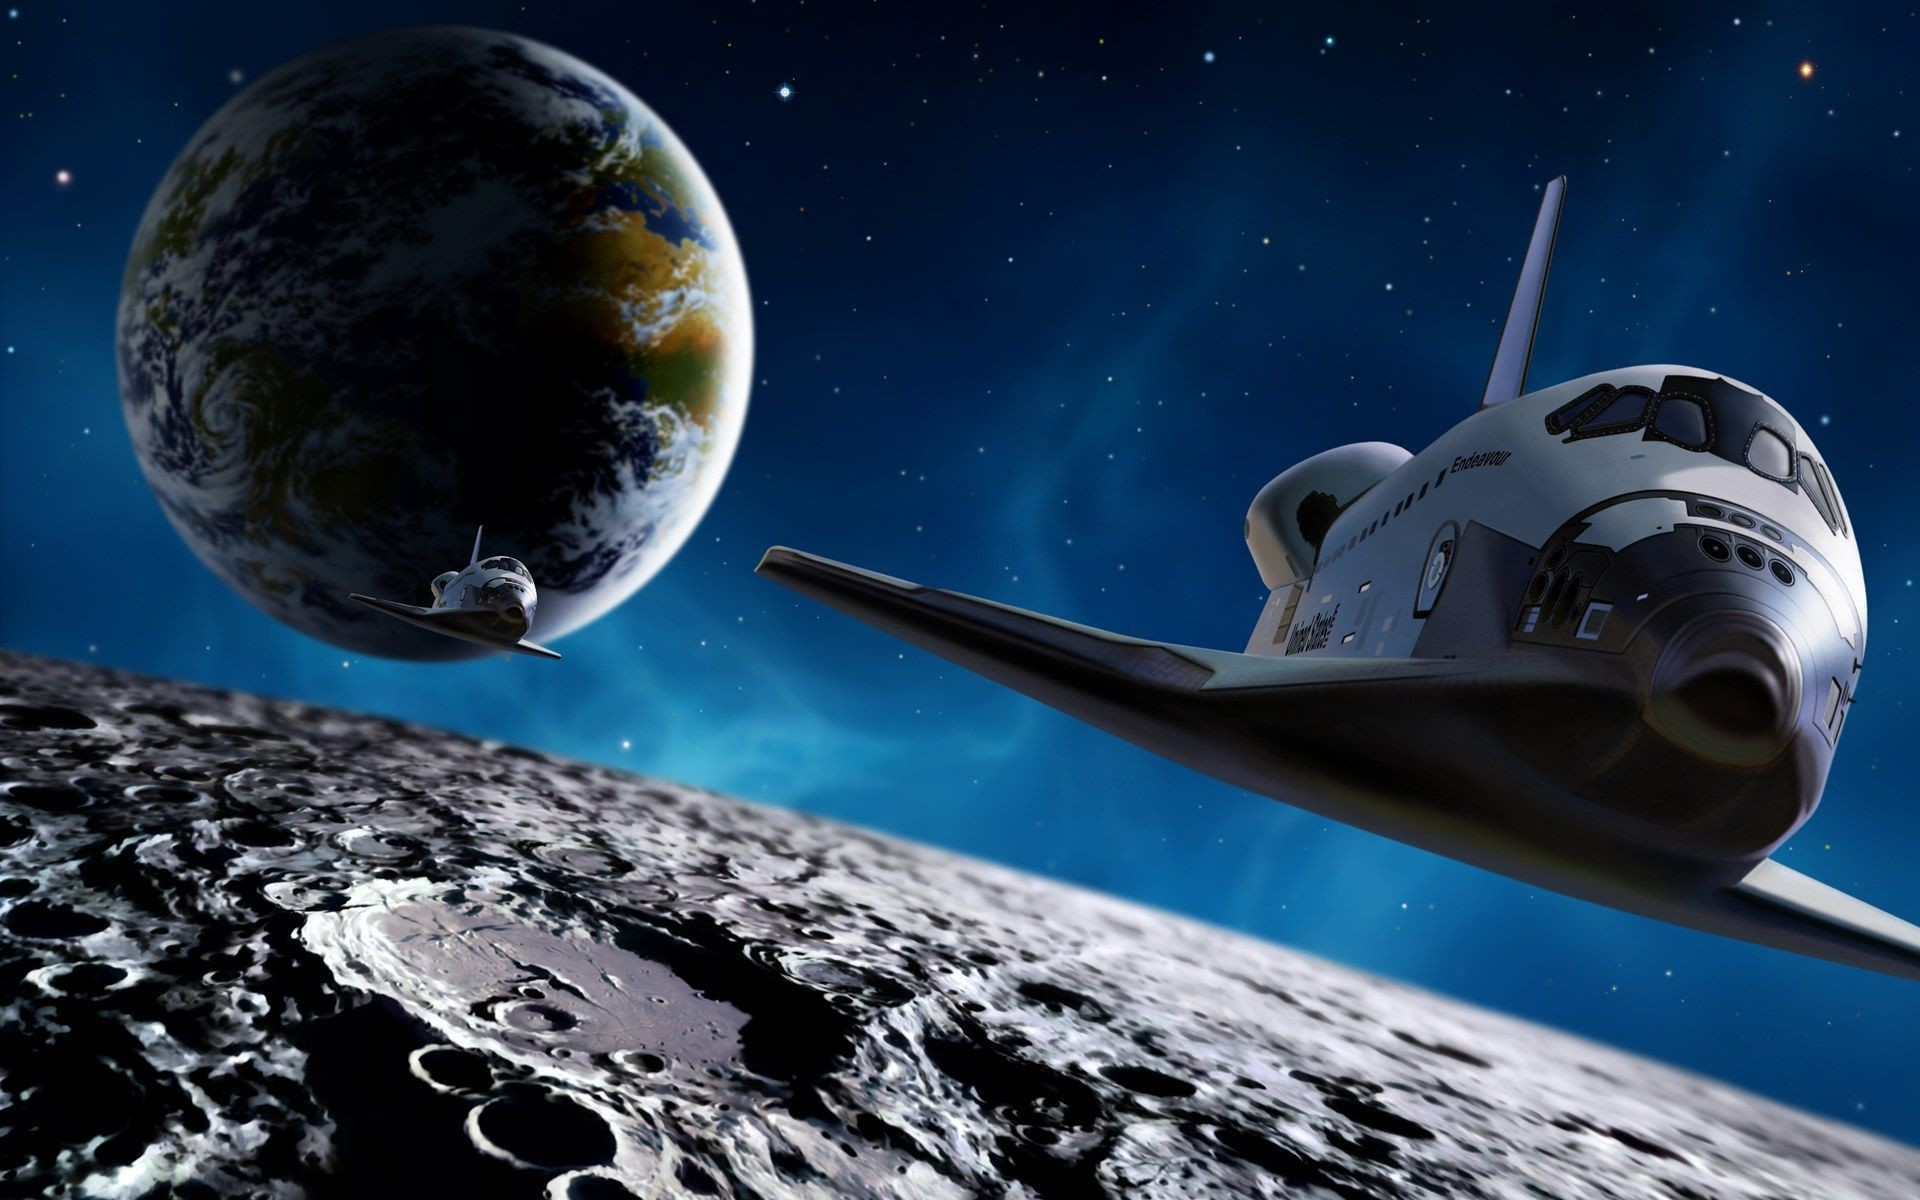 Hd Space Wallpaper Ipad: 1080p Space Wallpaper ·① Download Free High Resolution